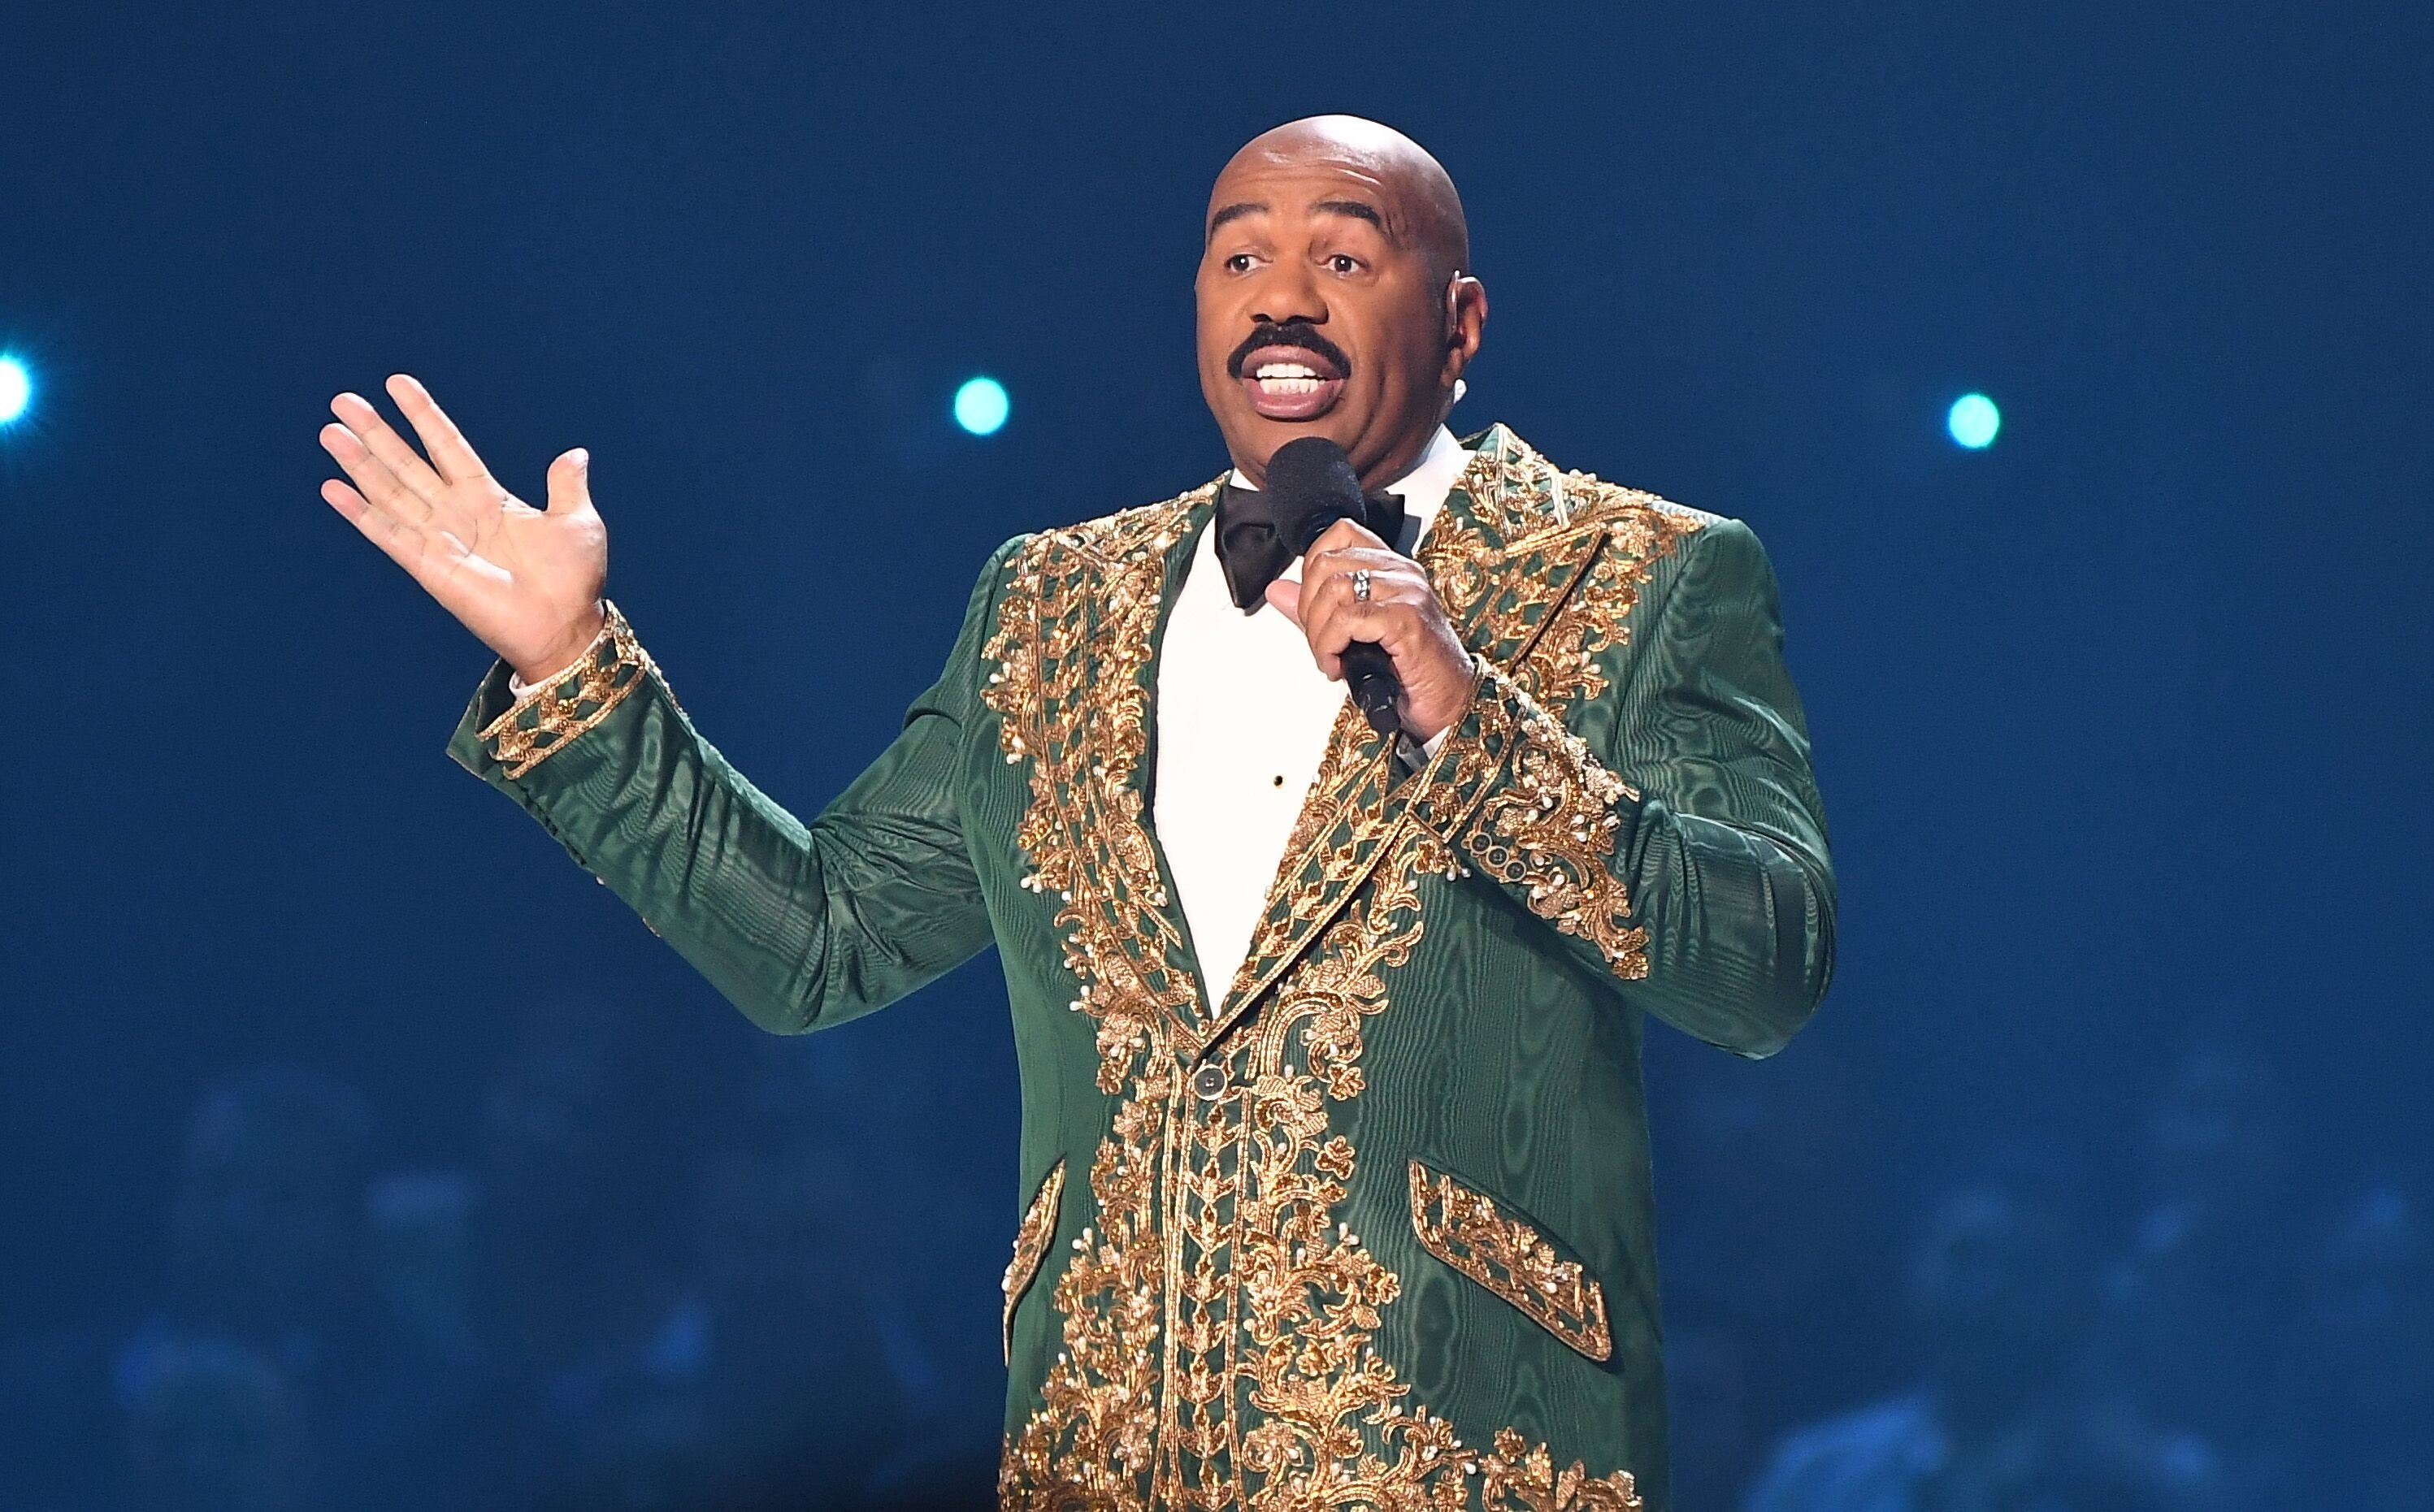 Steve Harvey hosting the Miss Universe Pageant on December 8, 2019 Photo Getty Images